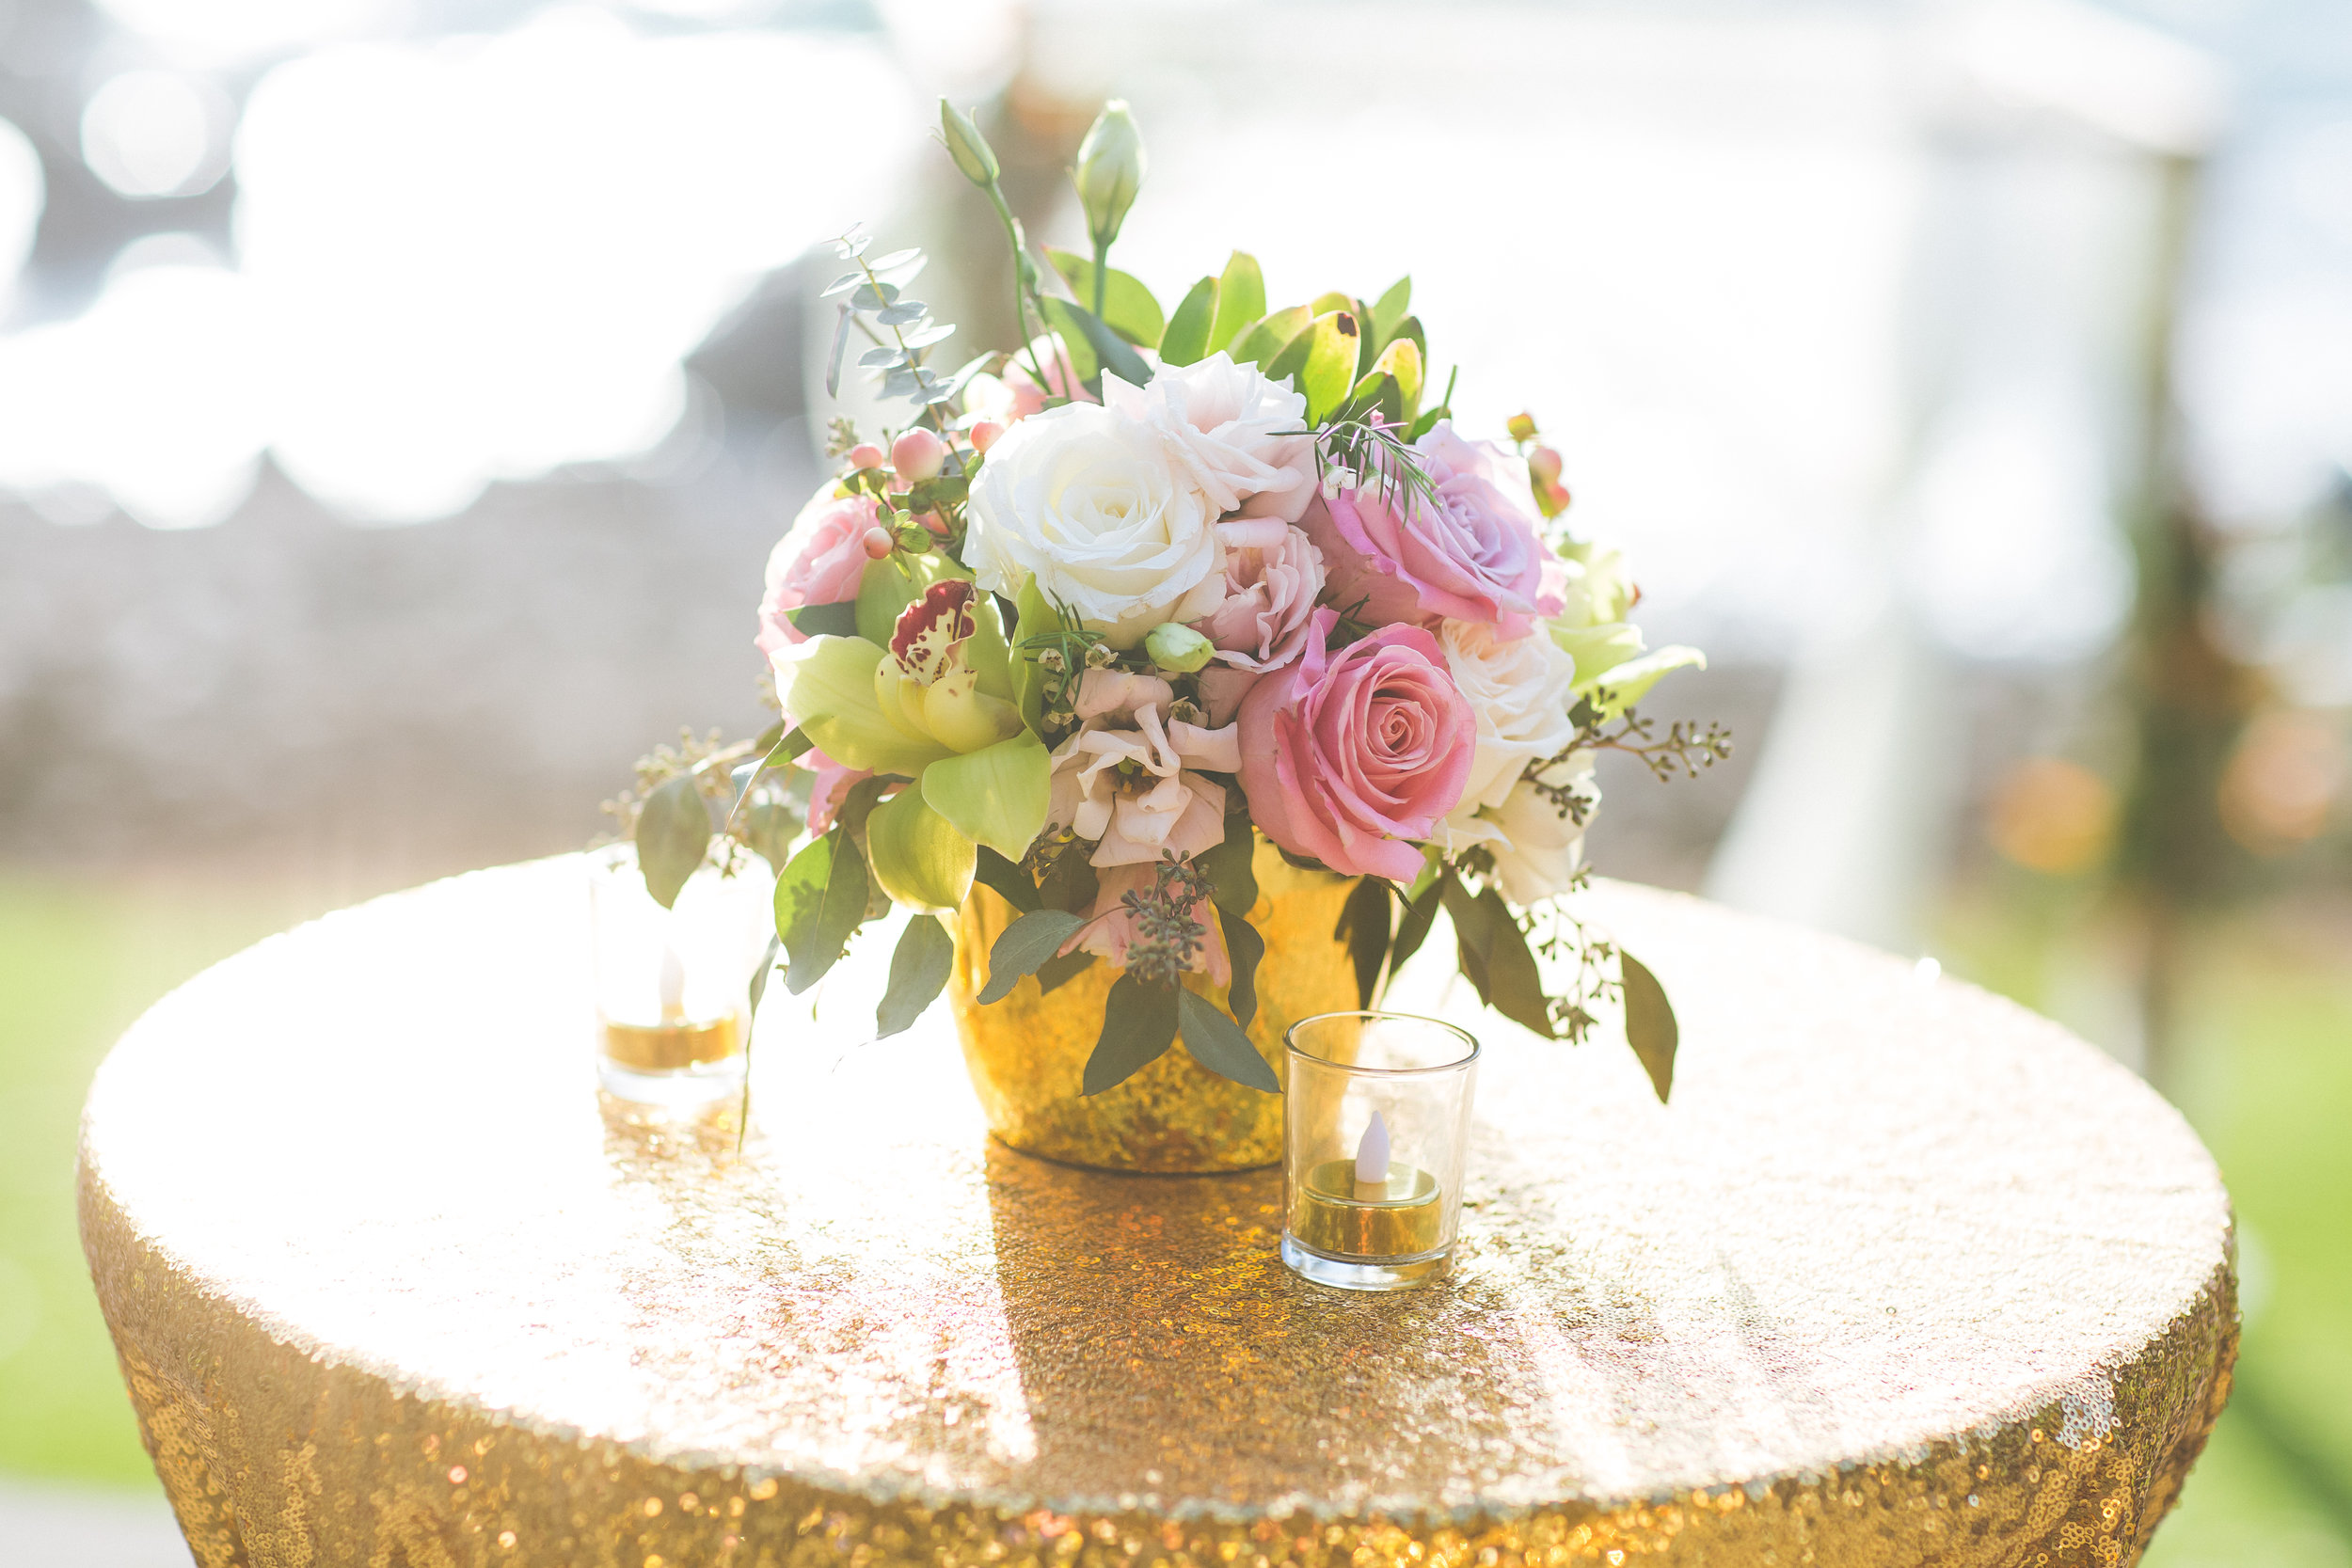 Gold & Flowers - wedding details by Bliss and Petals - Dmitri and Sandra Photography